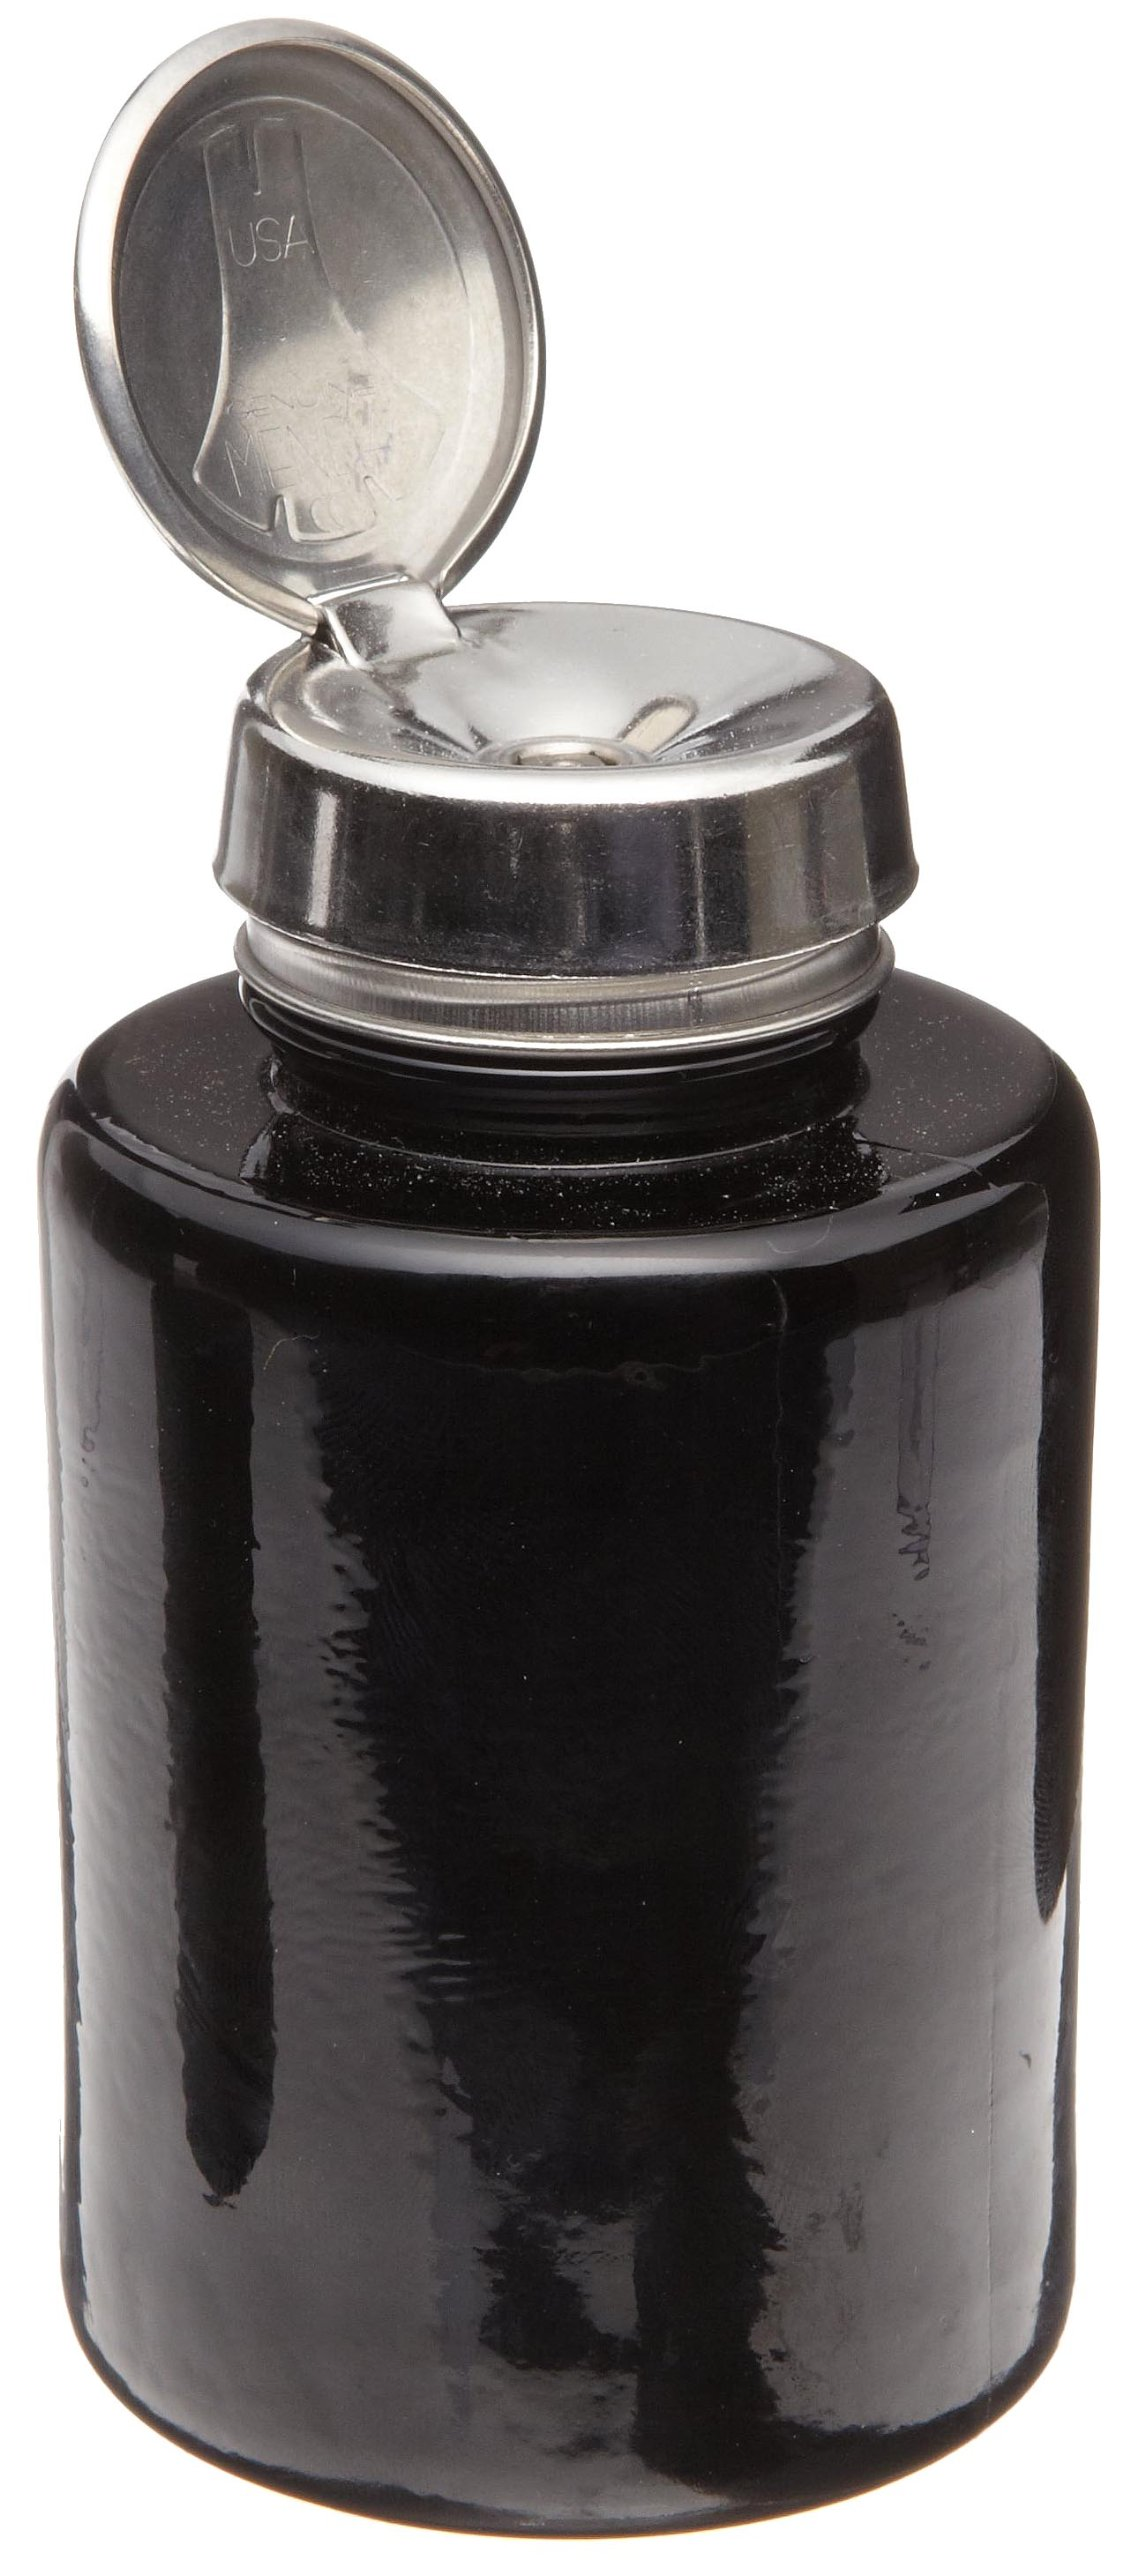 Menda 35385 6 oz Round Black Glass Bottle With Stainless Steel One Touch Pump